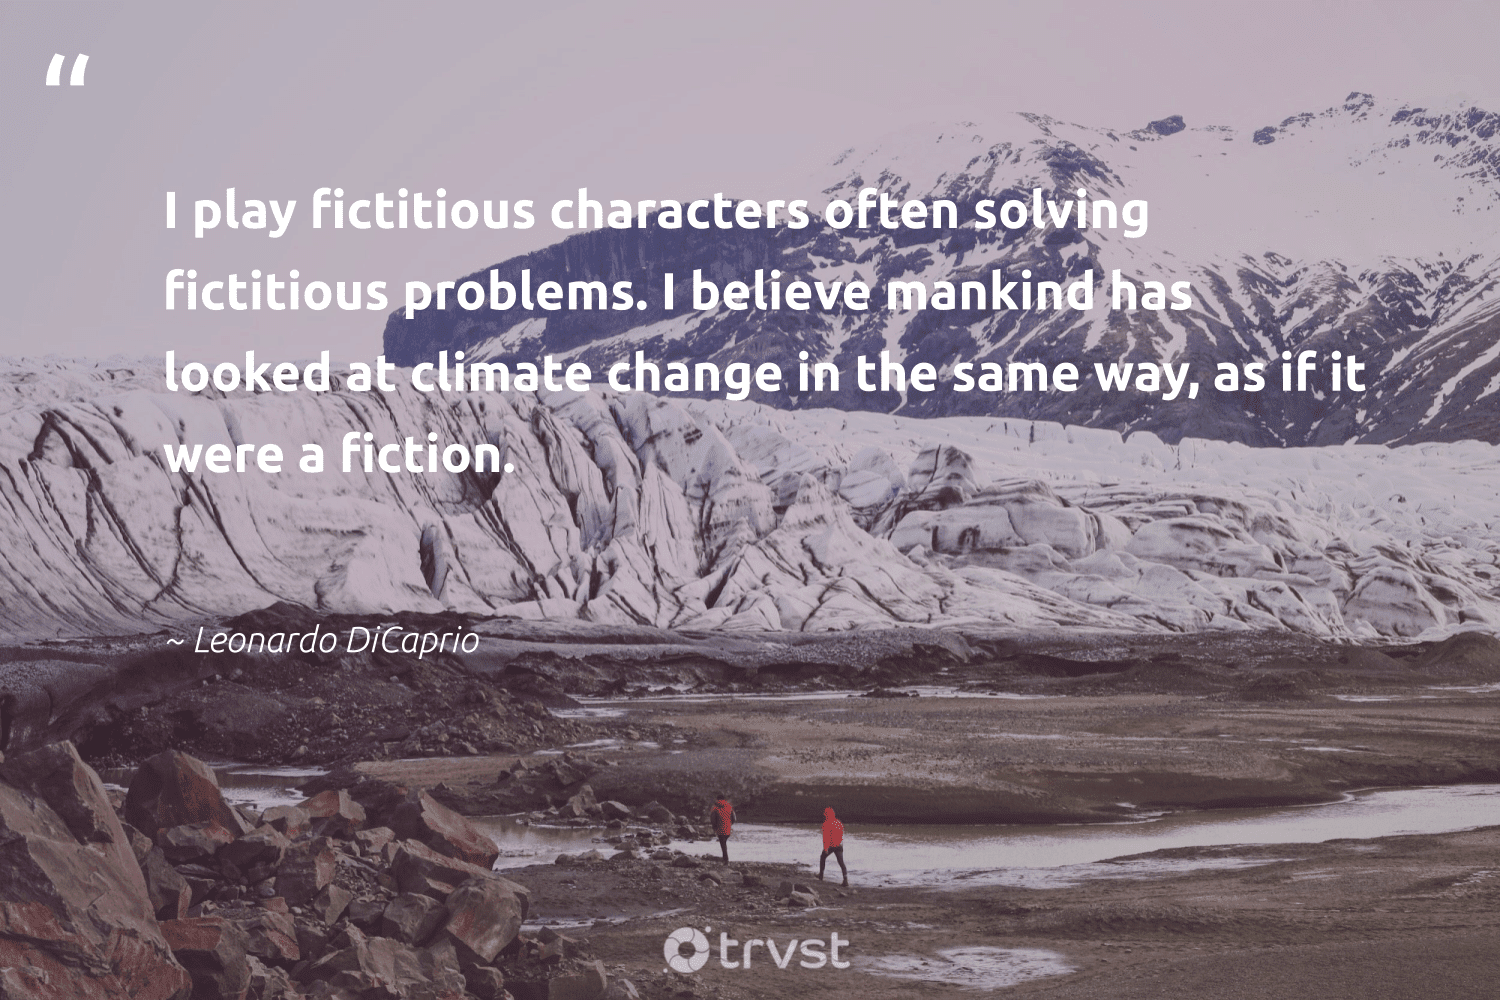 """""""I play fictitious characters often solving fictitious problems. I believe mankind has looked at climate change in the same way, as if it were a fiction.""""  - Leonardo DiCaprio #trvst #quotes #climatechange #climate #climatechangeisreal #cop21 #climatefight #ecoconscious #changetheworld #co2 #actonclimate #sustainablefutures"""